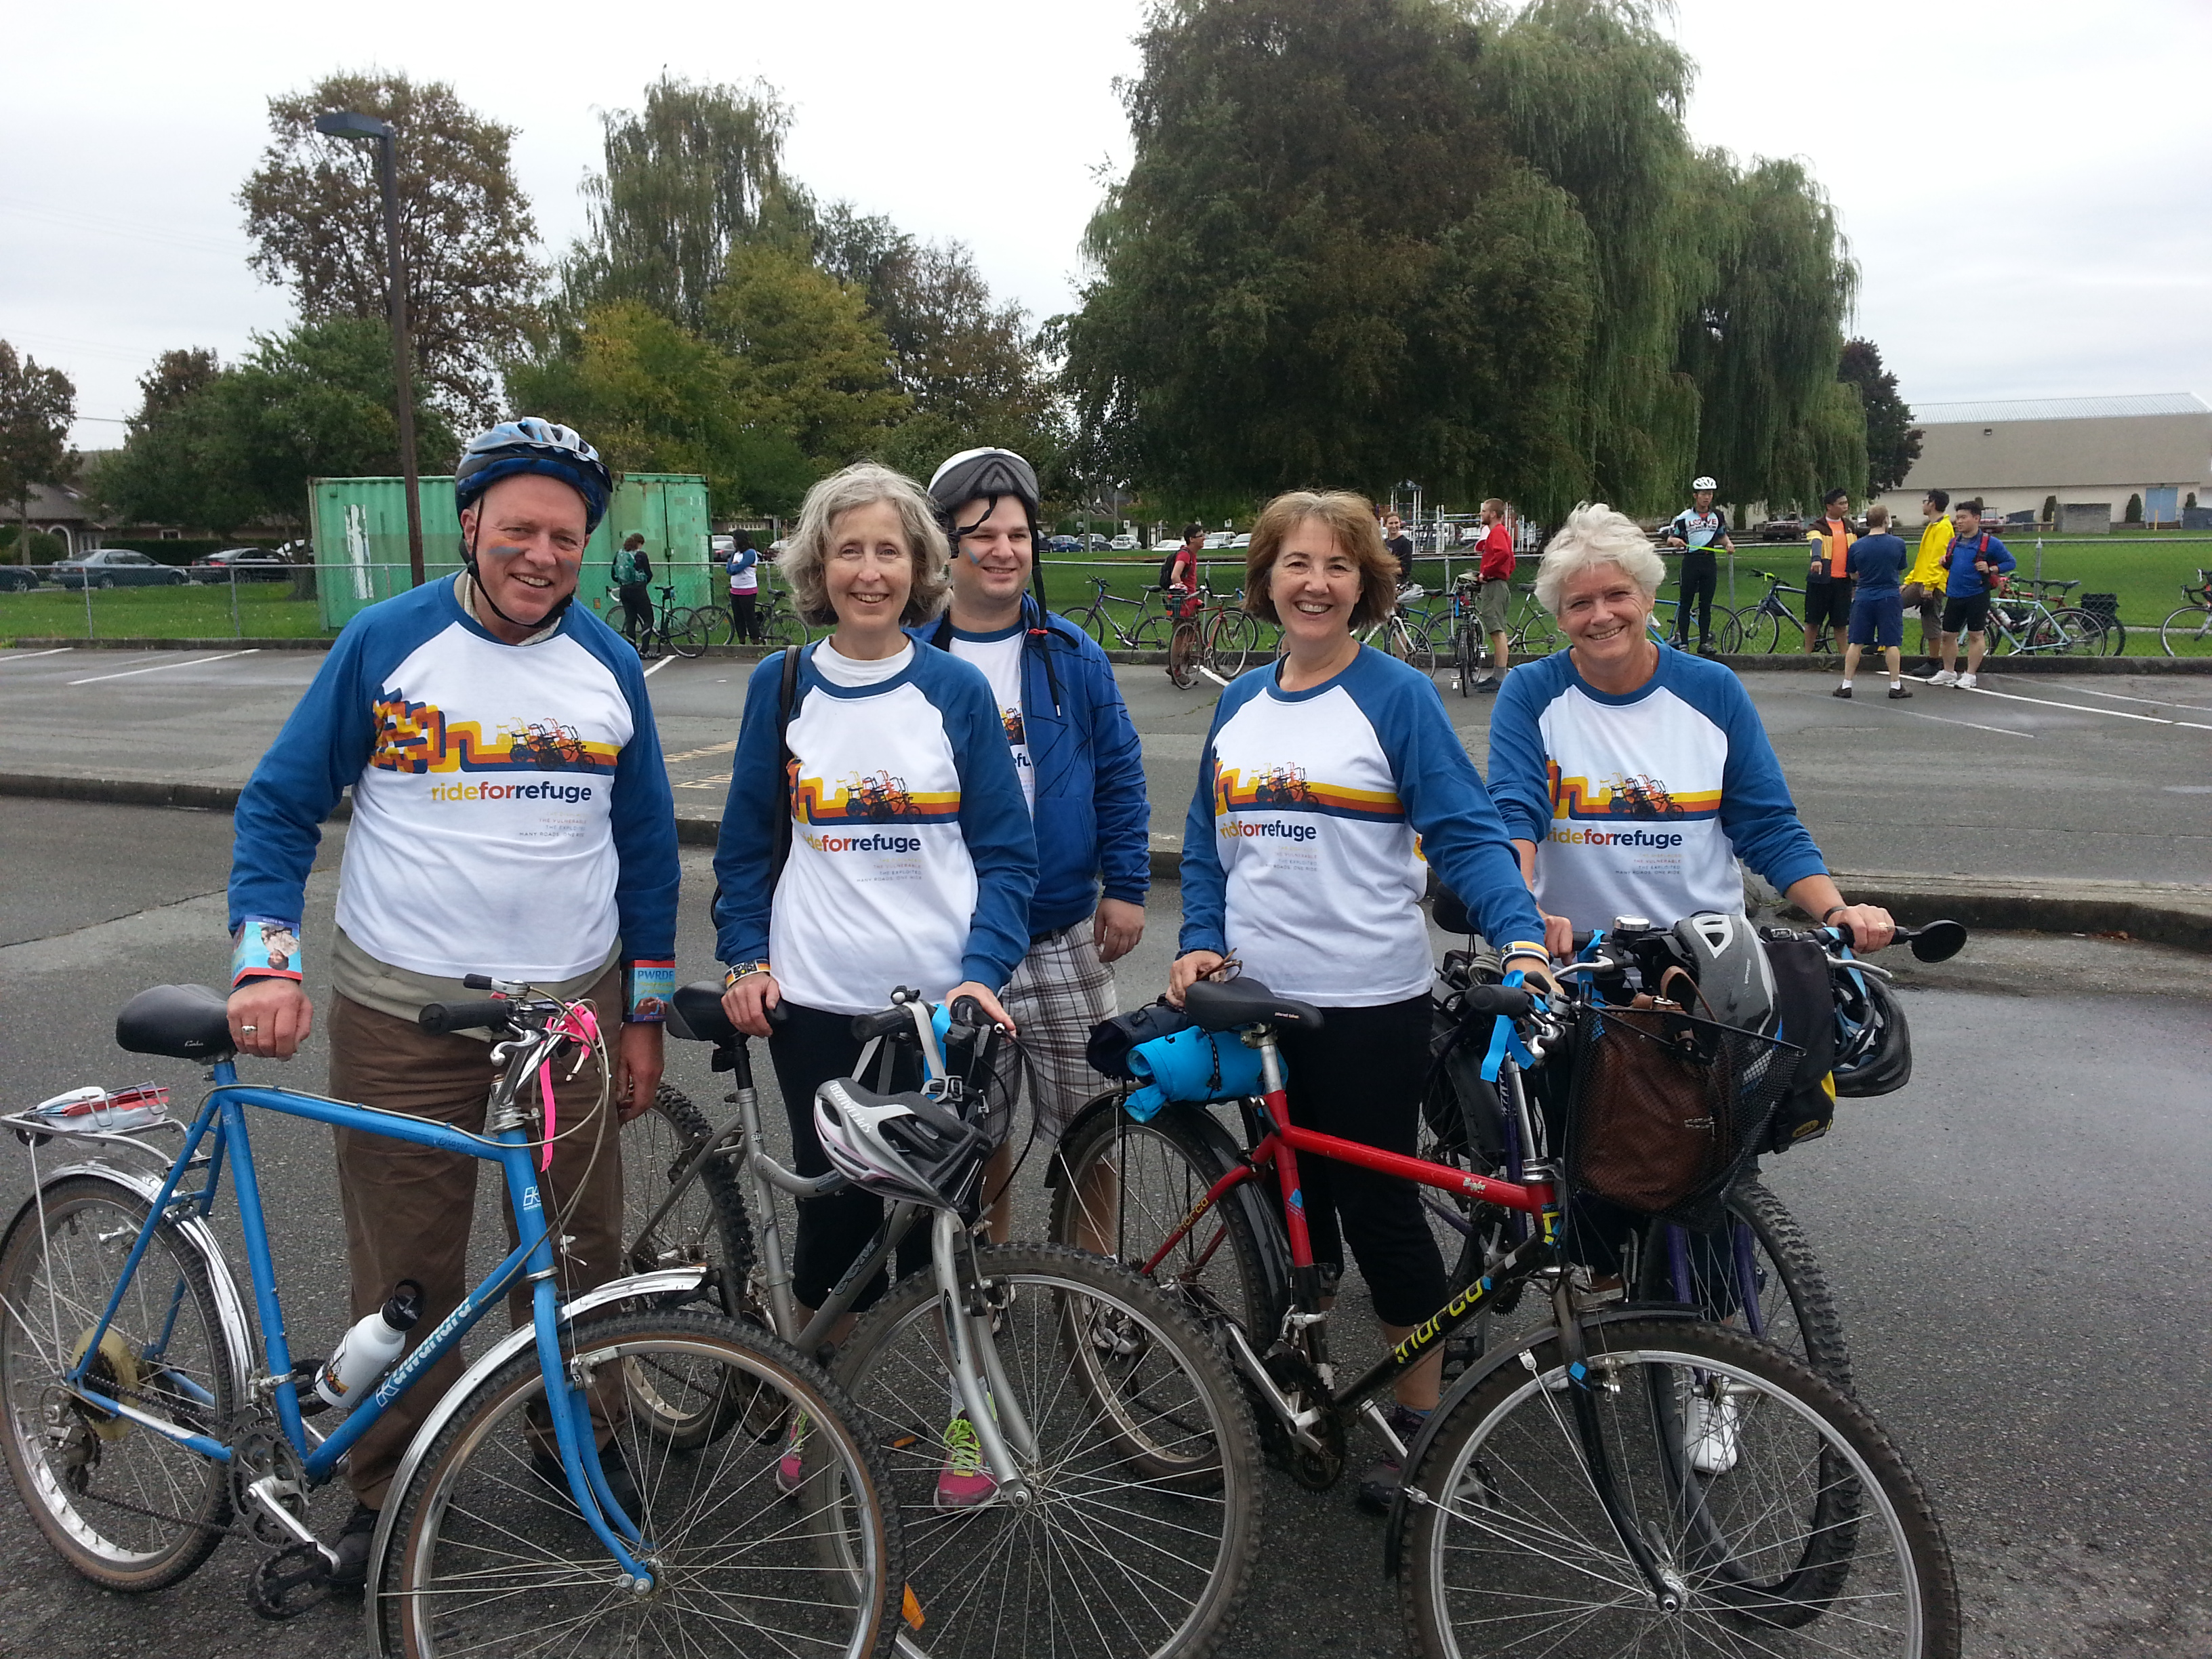 Riders on the PWRDF Vancouver Team in the 2014 Ride for Refuge. Photo: Contributed